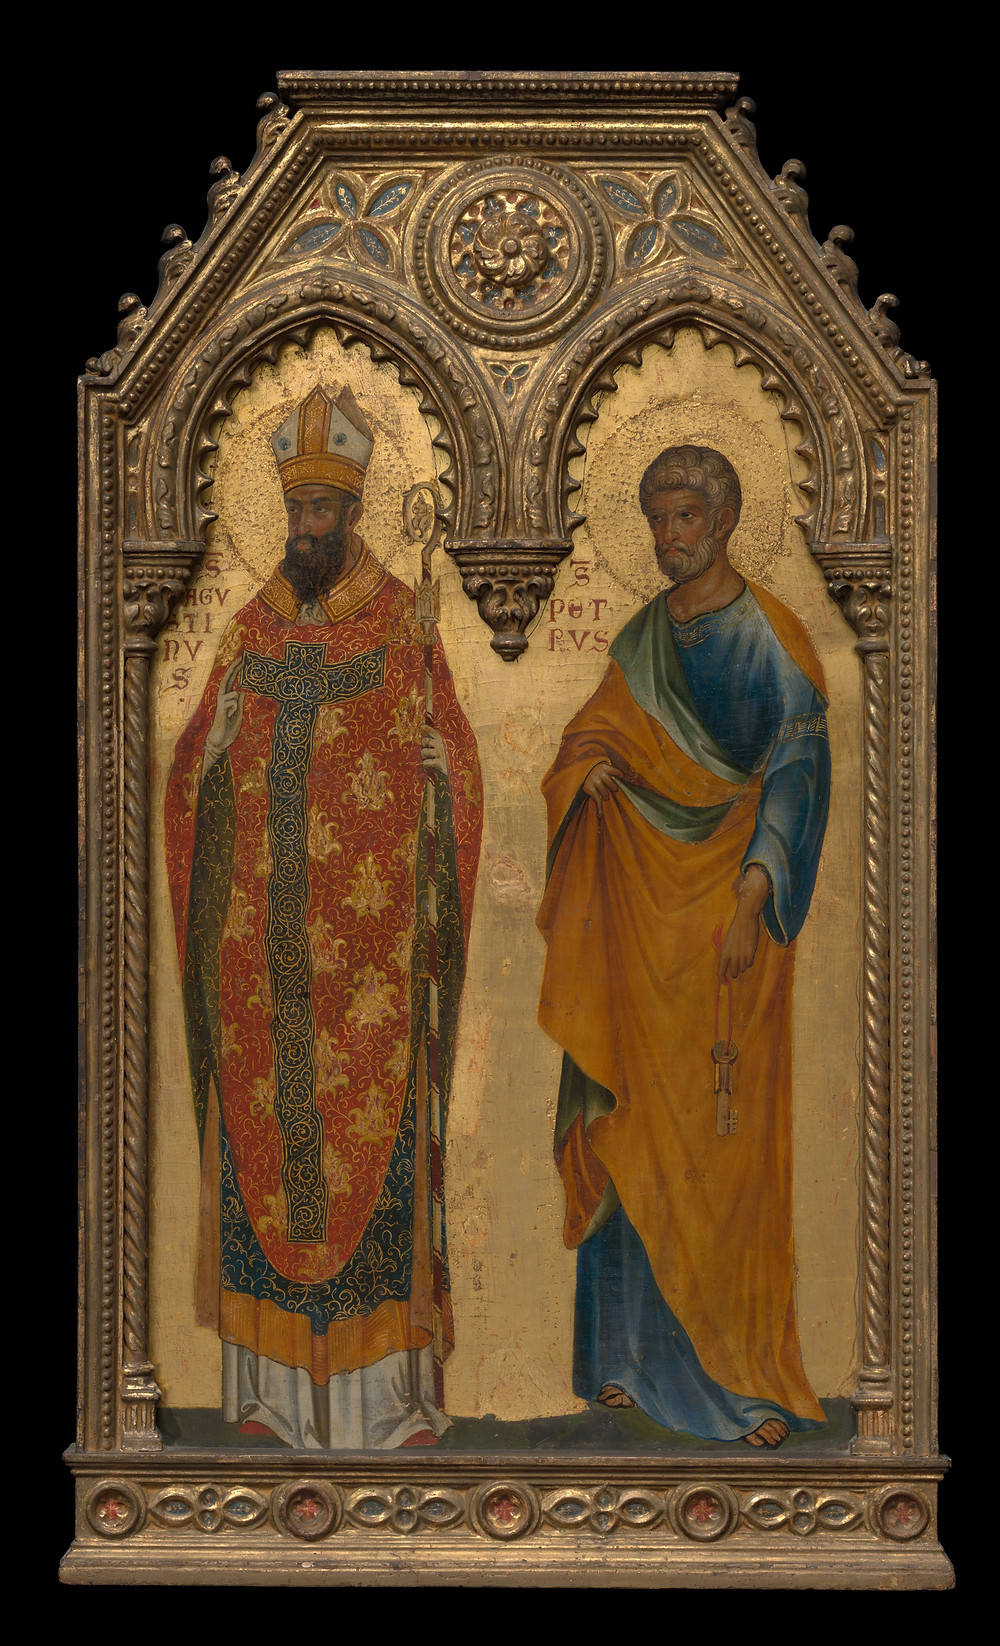 Saints Augustine and Peter; Paolo Veneziano and workshop, Italian, c. 1350.